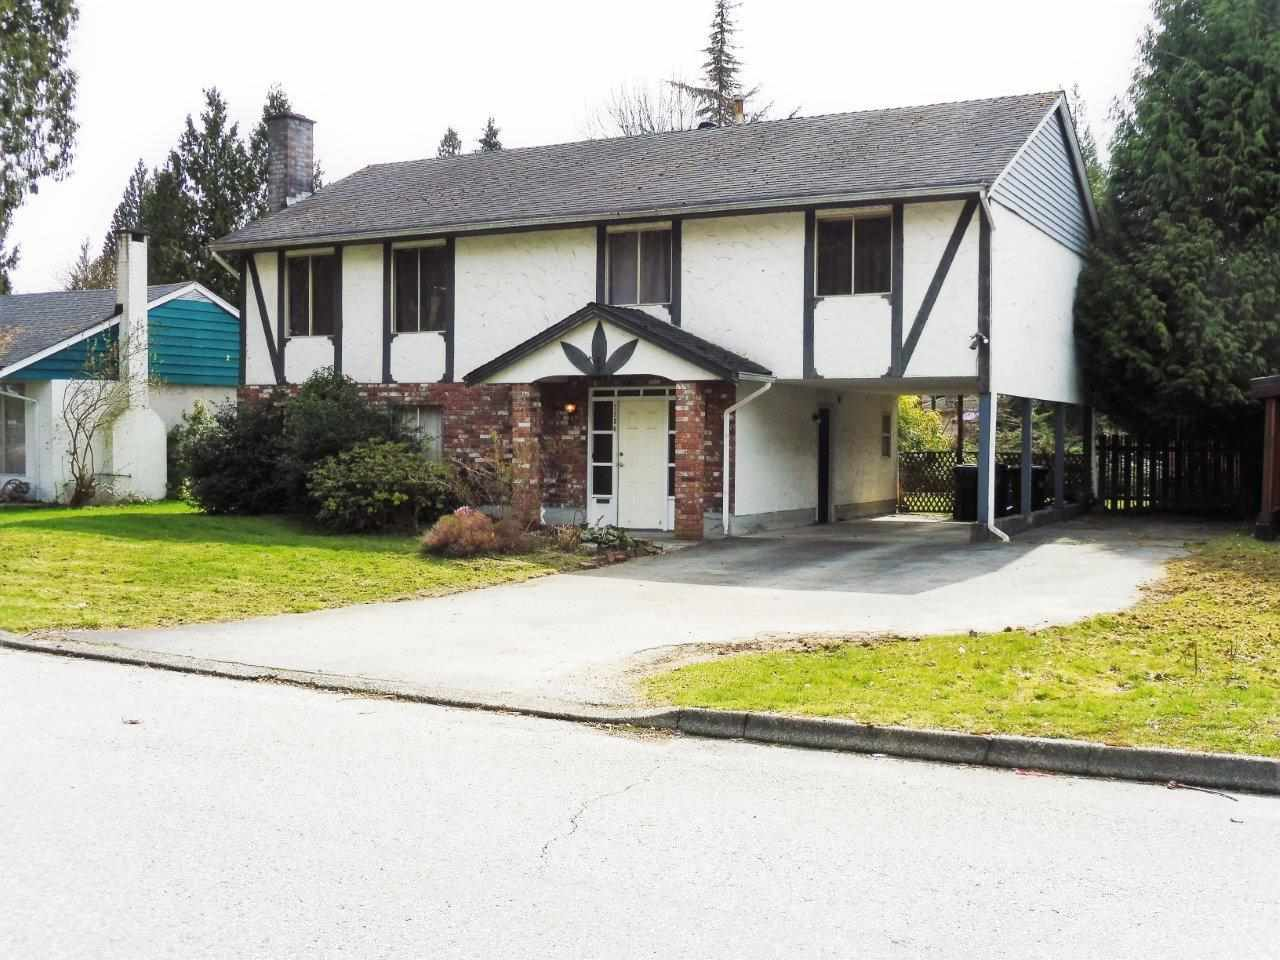 """Main Photo: 1386 LARKSPUR Drive in Port Coquitlam: Birchland Manor House for sale in """"BIRCHLAND MANOR"""" : MLS®# R2256448"""